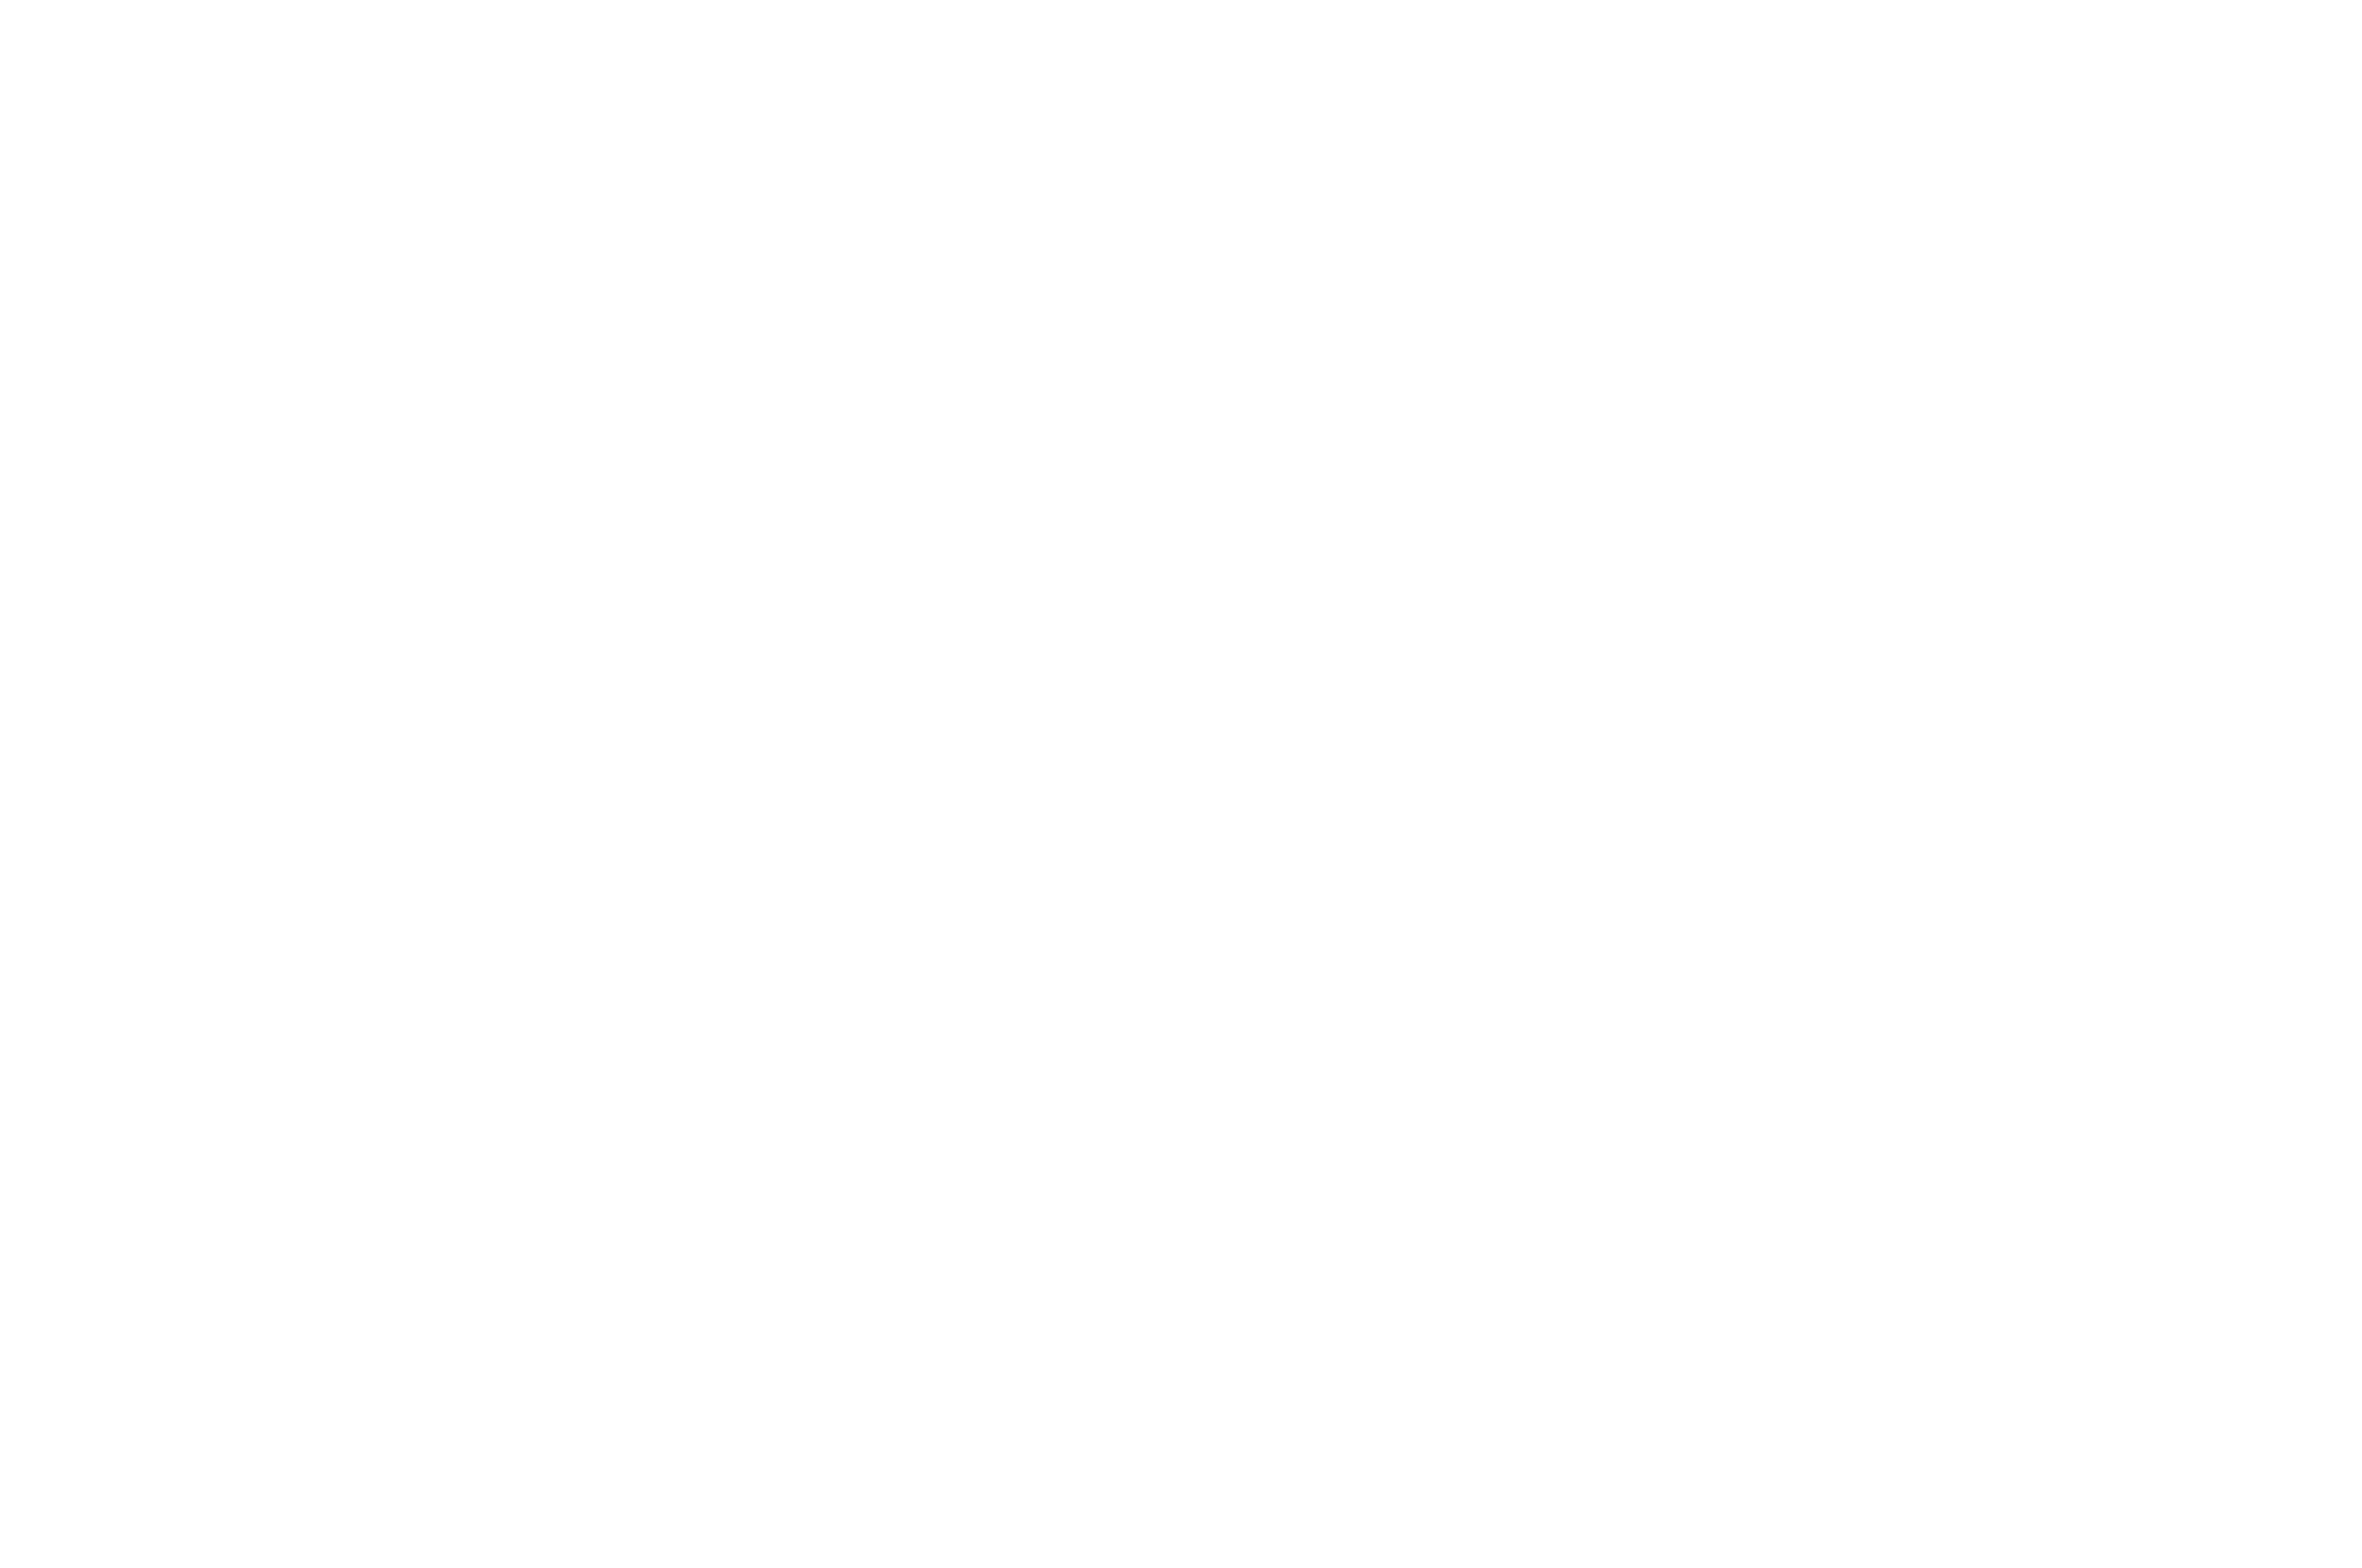 OFFICIALSELECTION-ATLANTAHORRORFILMFESTIVAL-2018.png